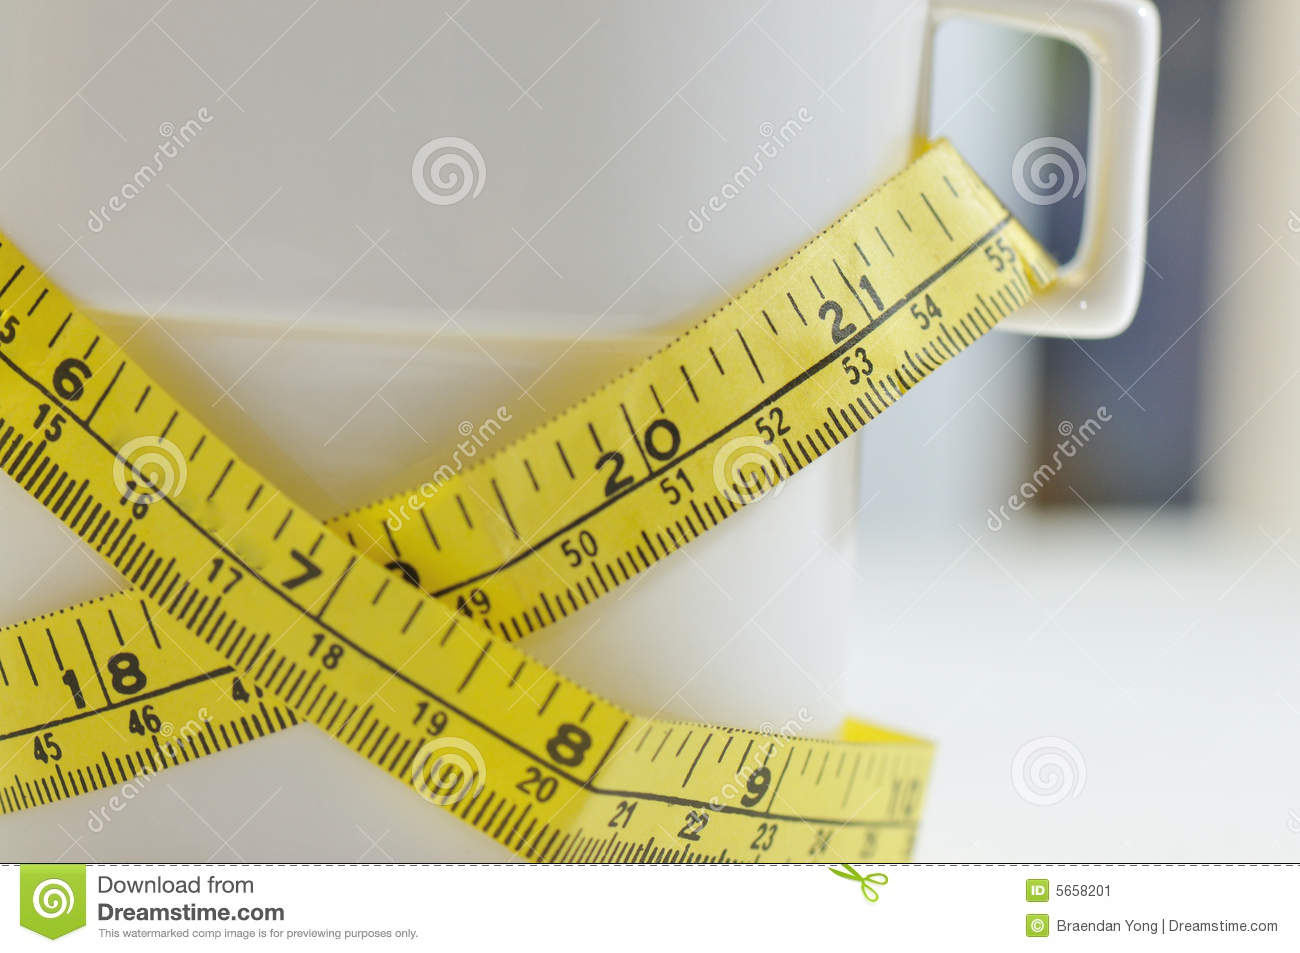 Weight Loss in a Cup I stock image. Image of loss, measure